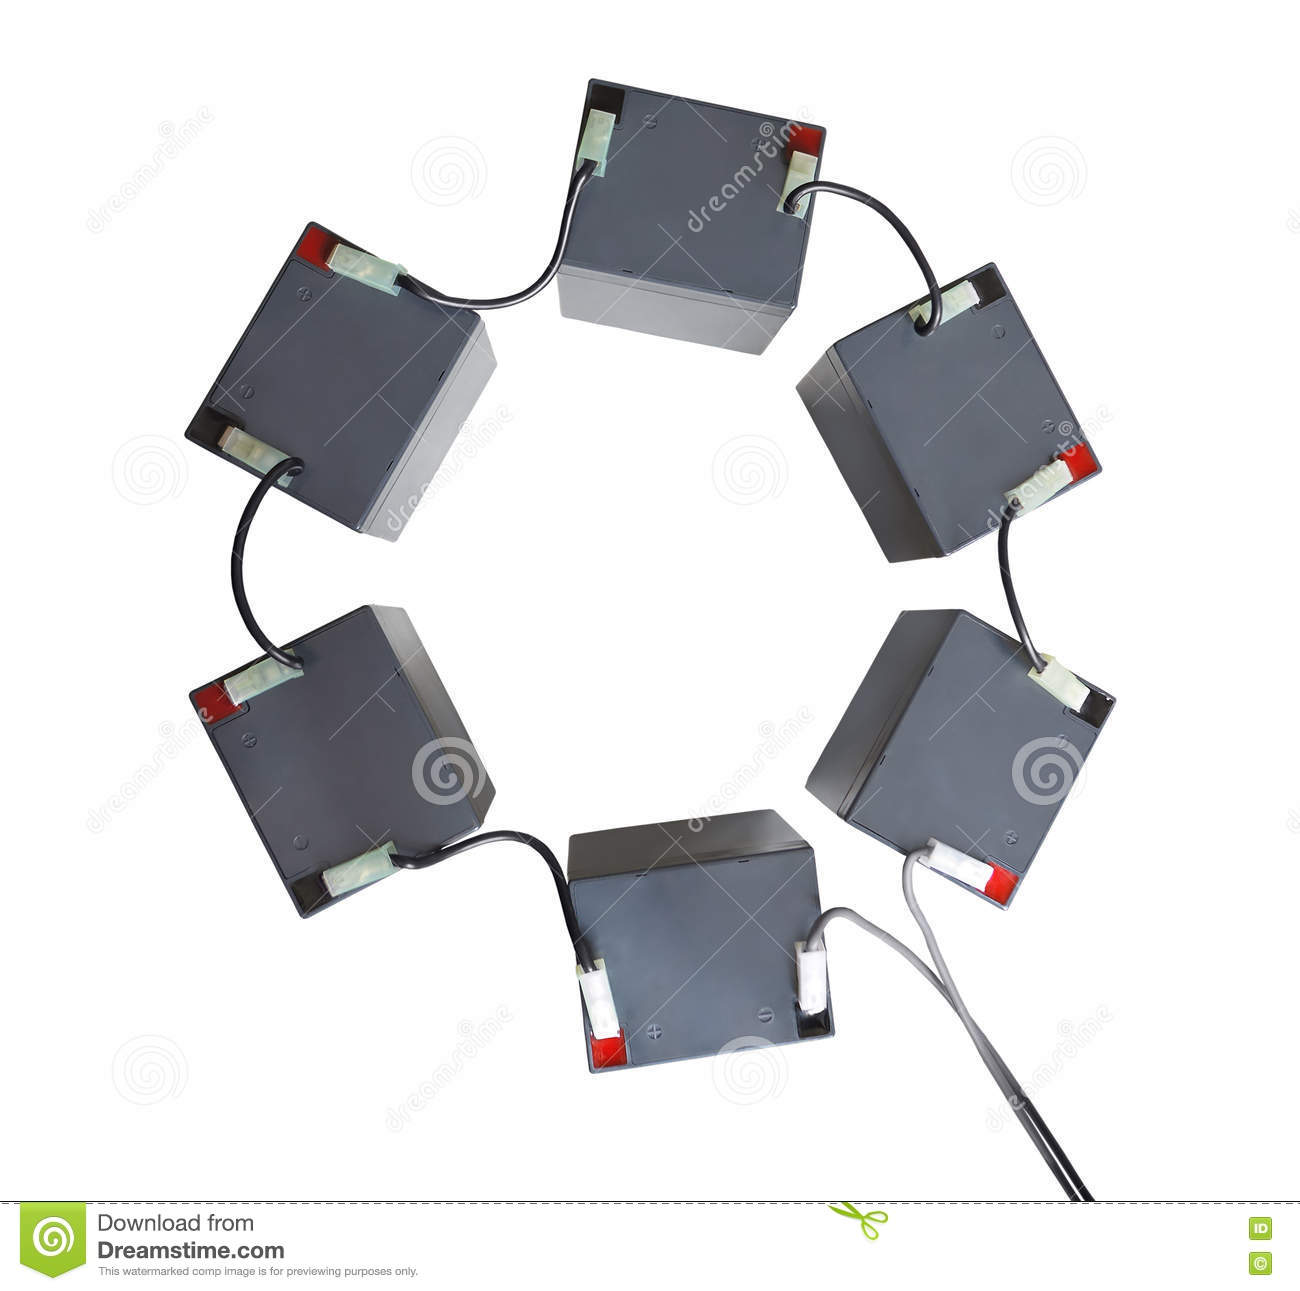 Https Stock Photo Staircase Inside Tower Clock Remote Control Circuit Board Promotiononline Shopping For Promotional Battery Block Connected Wires Industrial Batteries Arranged Circle Hooked Up Cables Isolated White Background 82300175